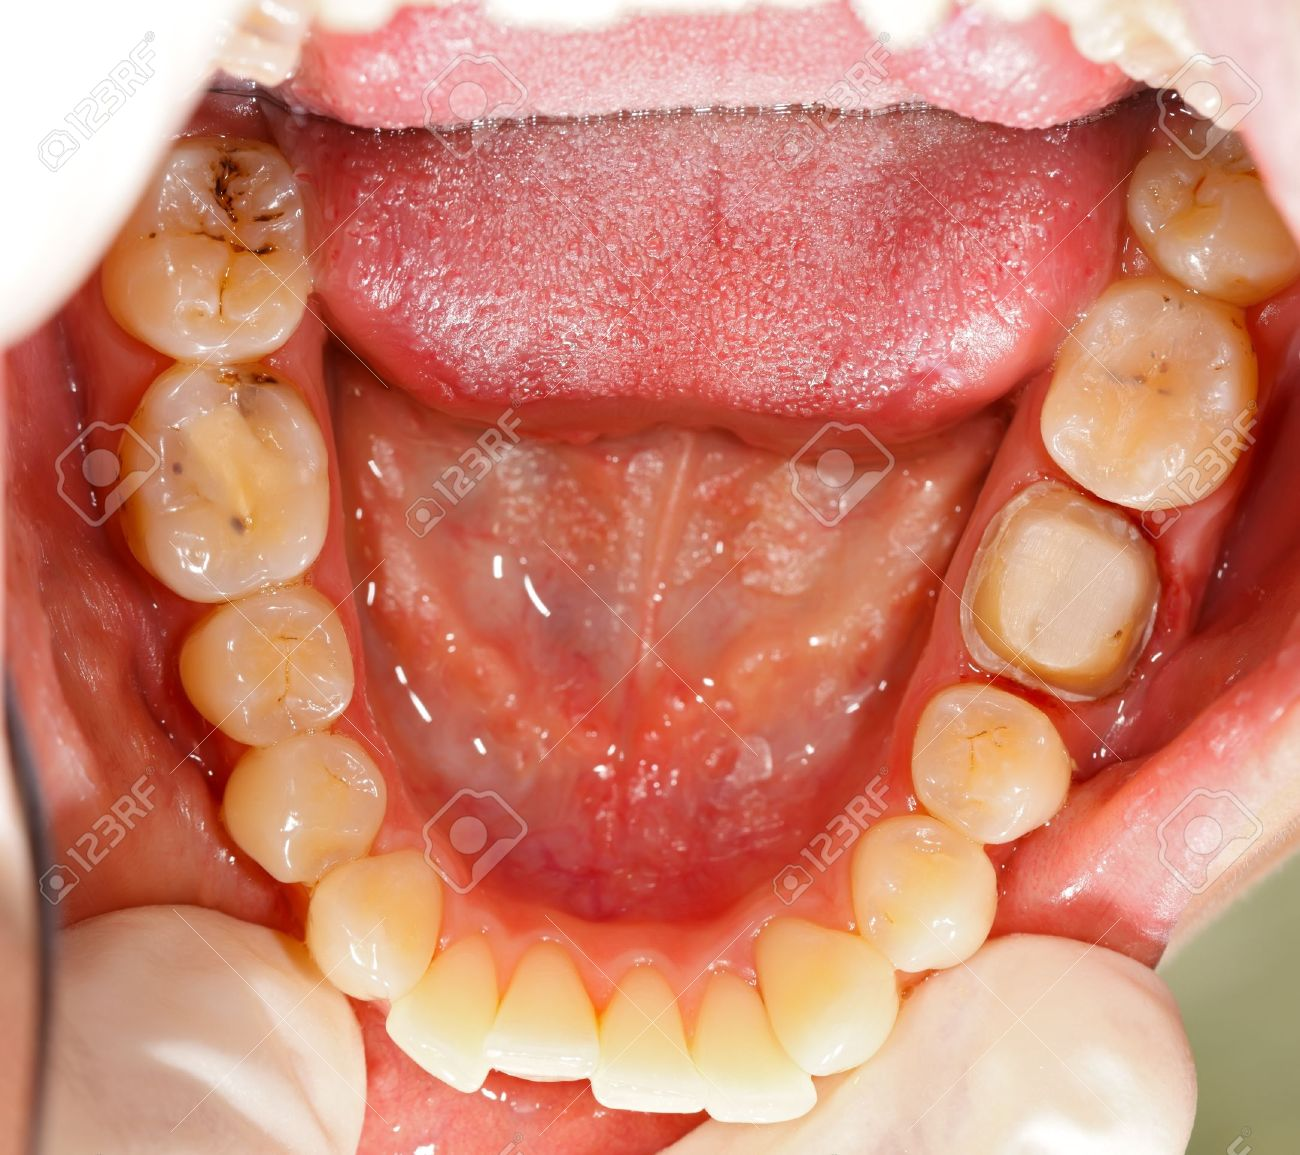 human molar tooth treated before a crown stock photo picture and